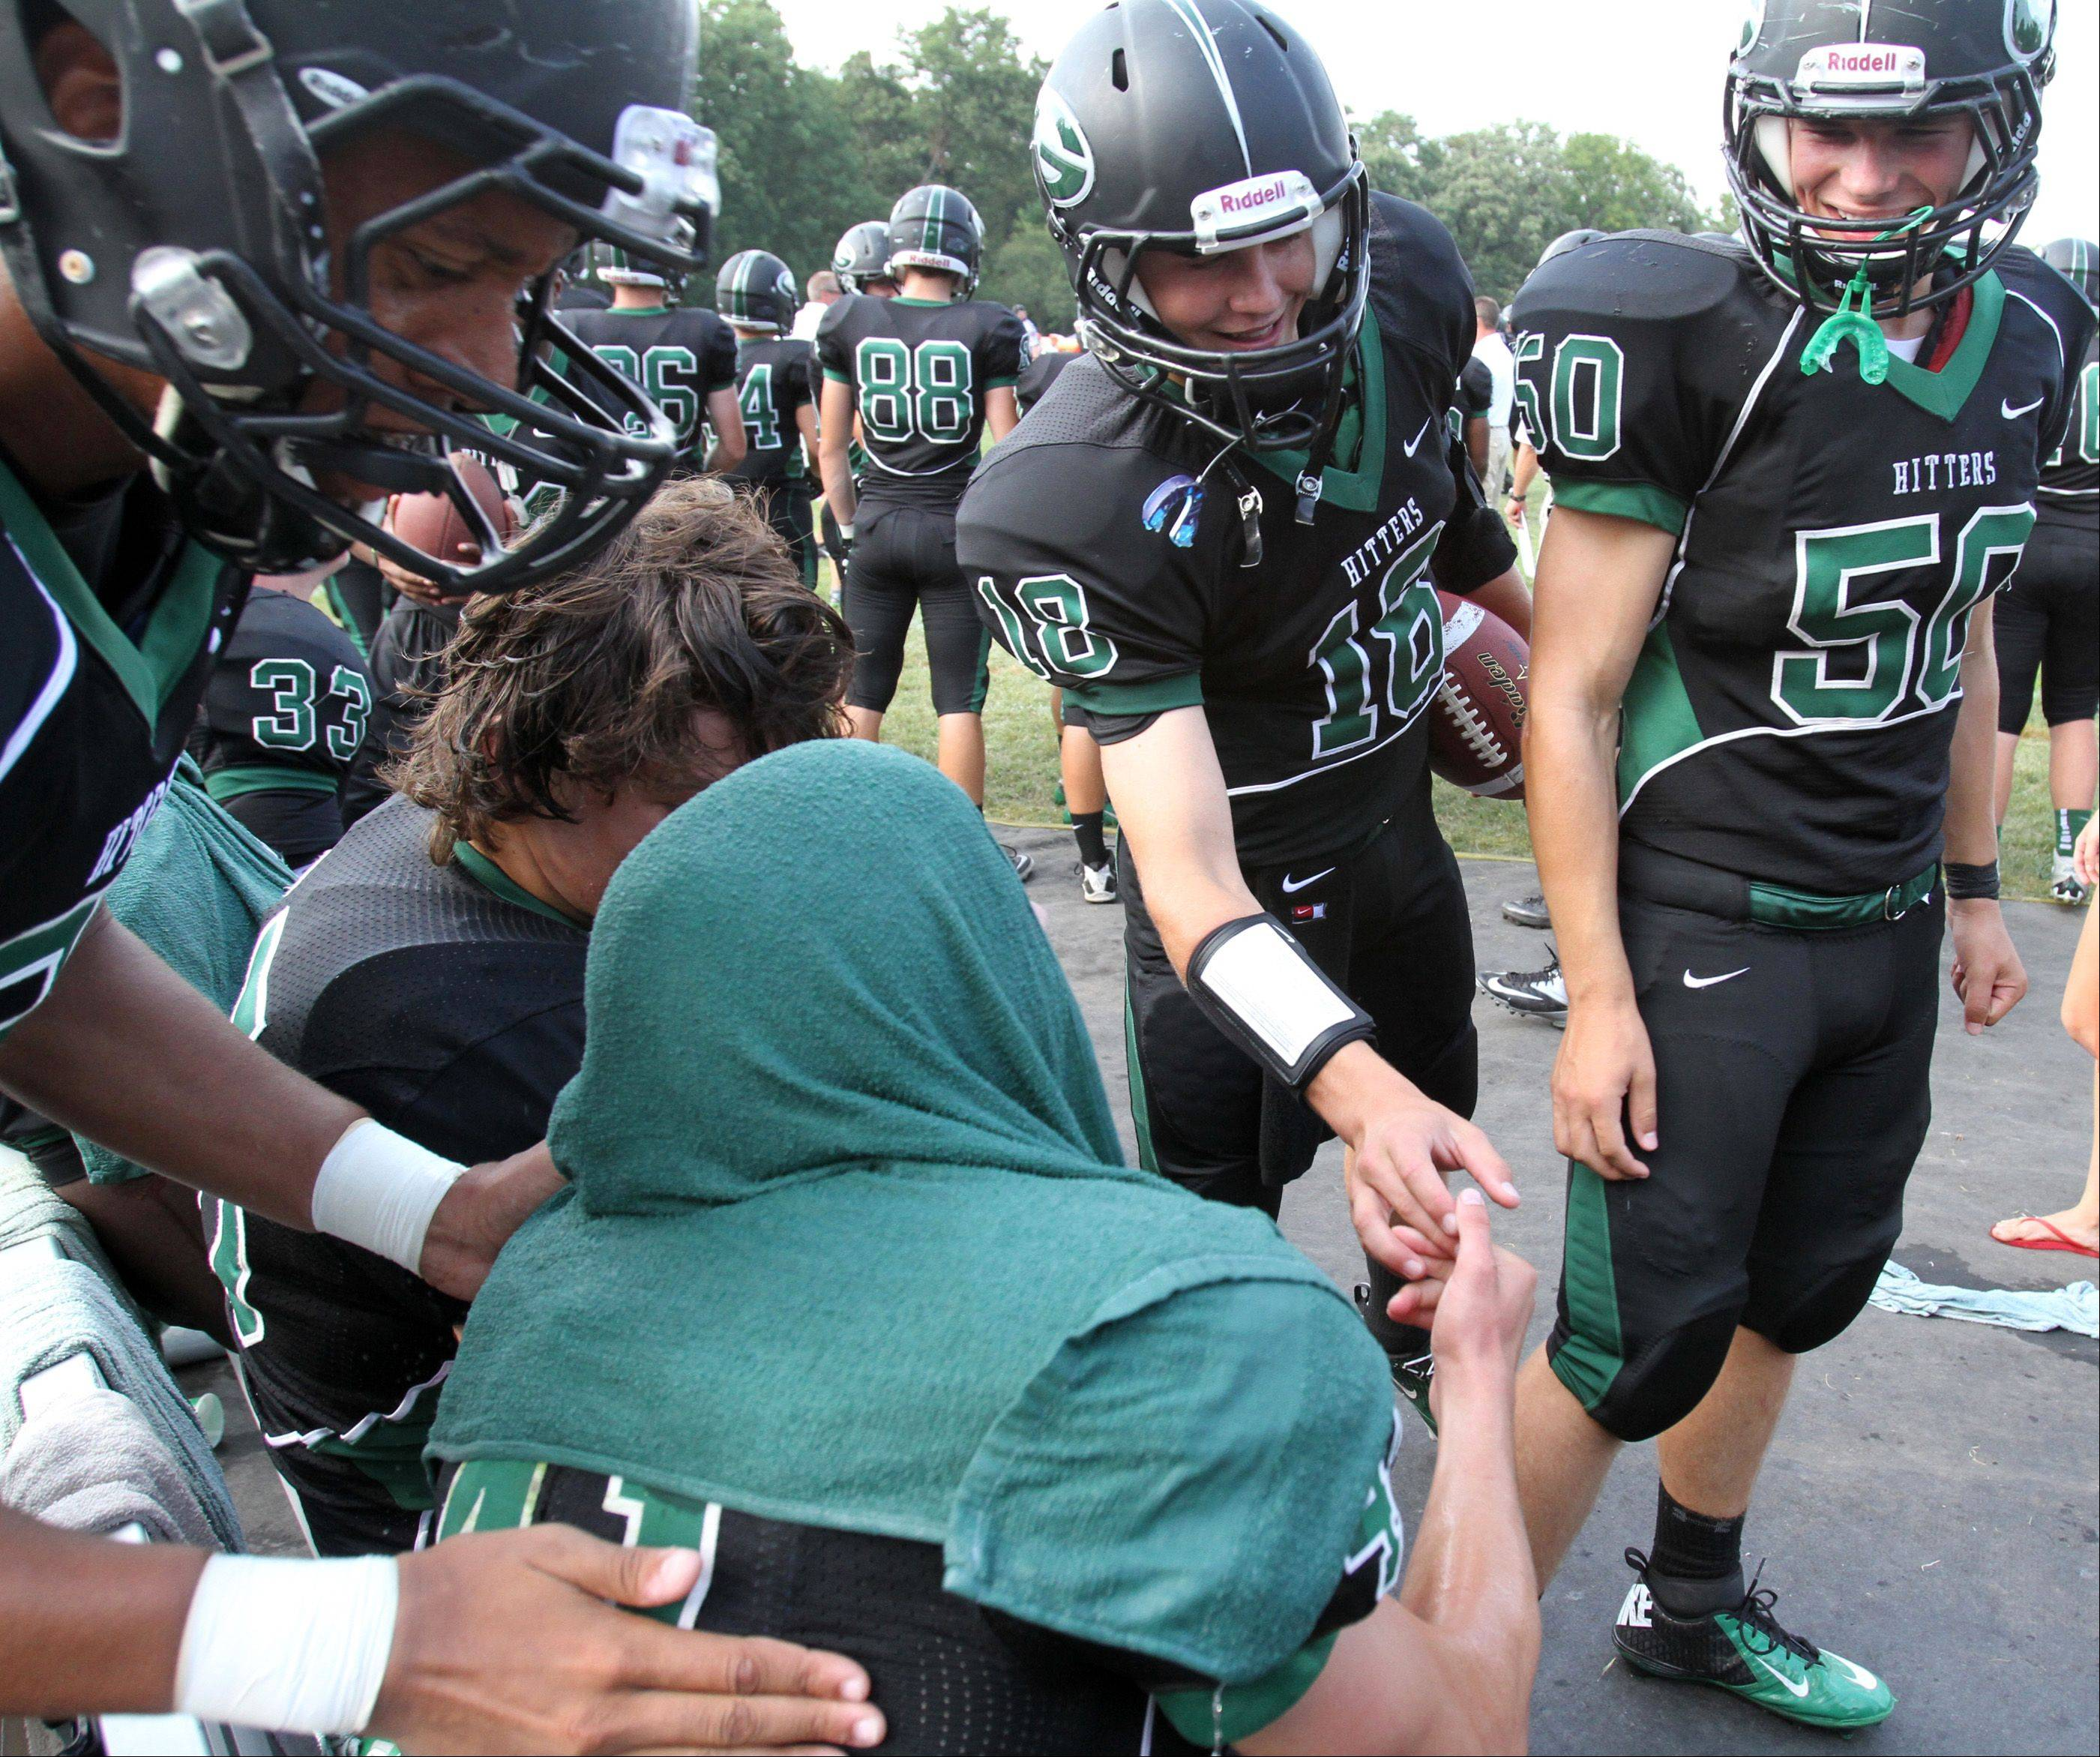 Glenbard West linebacker Eric Farley gets a cold wet-towel and hand from teammates after intercepting the ball in the third-quarter against Wheaton Warrenville South at Glenbard West on Saturday, August 25.